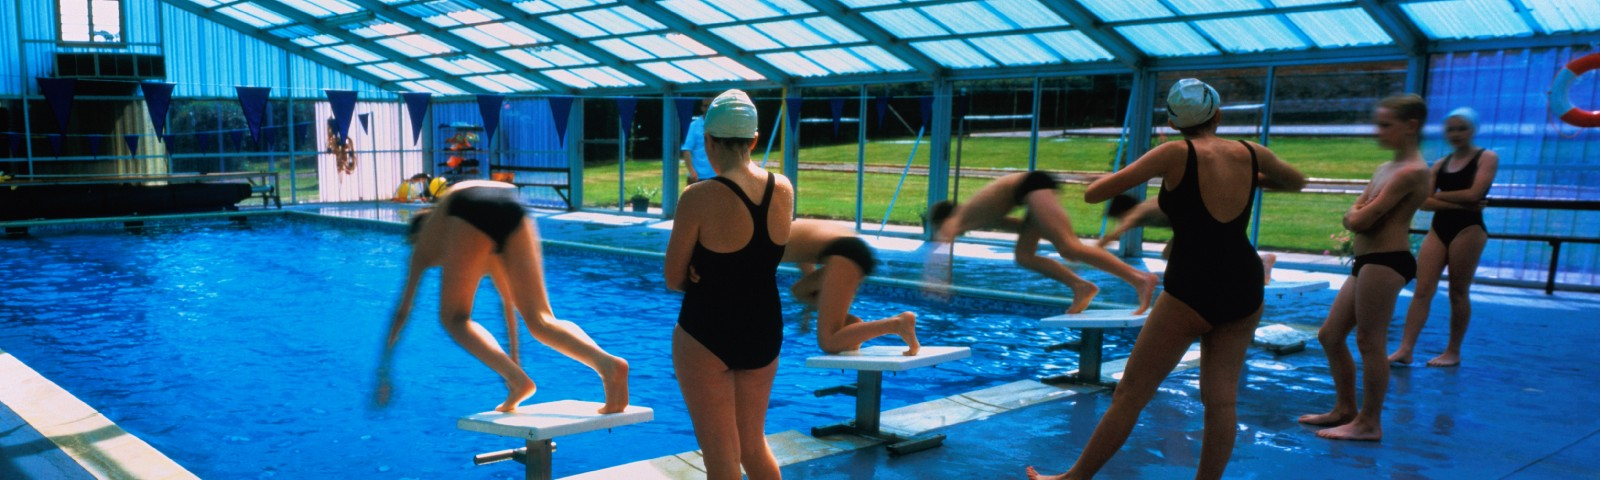 Photo of teenage schoolchildren using indoor swimming pool